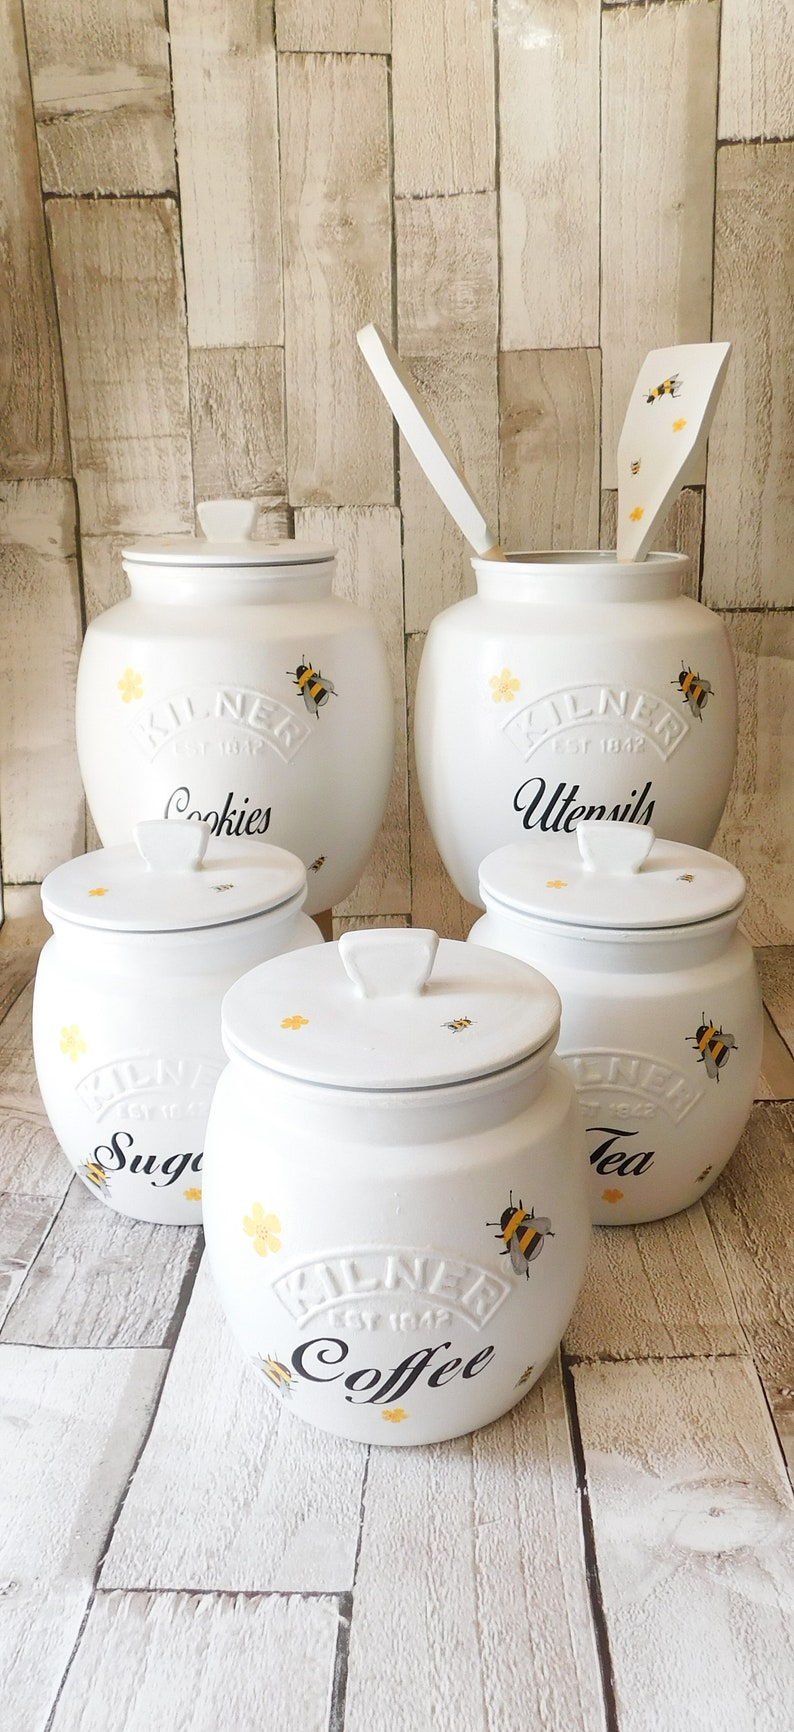 White Bumble Bee Kitchen Canisters Tea Coffee Sugar Jars image 0